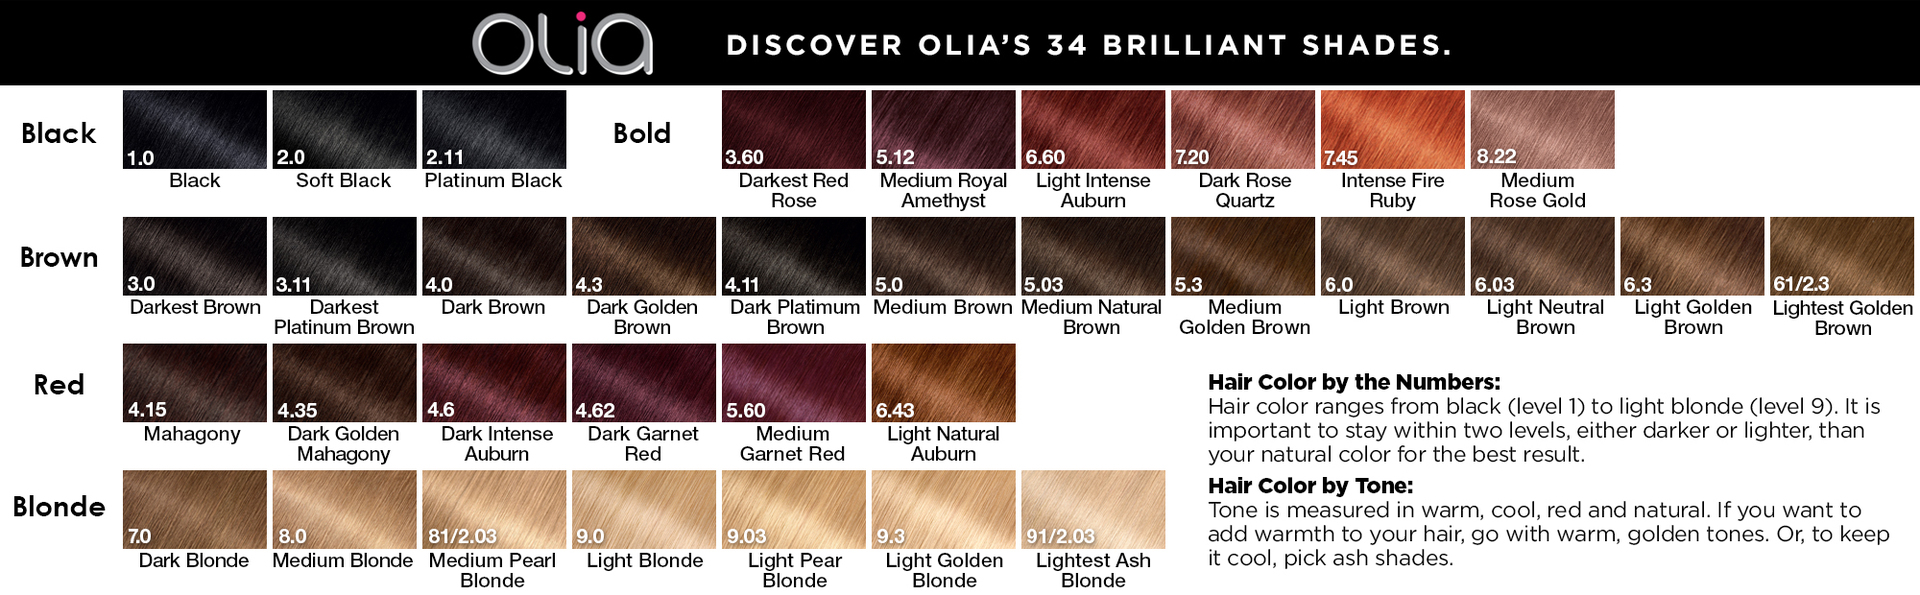 Olia Oil Ed Permanent Hair Color